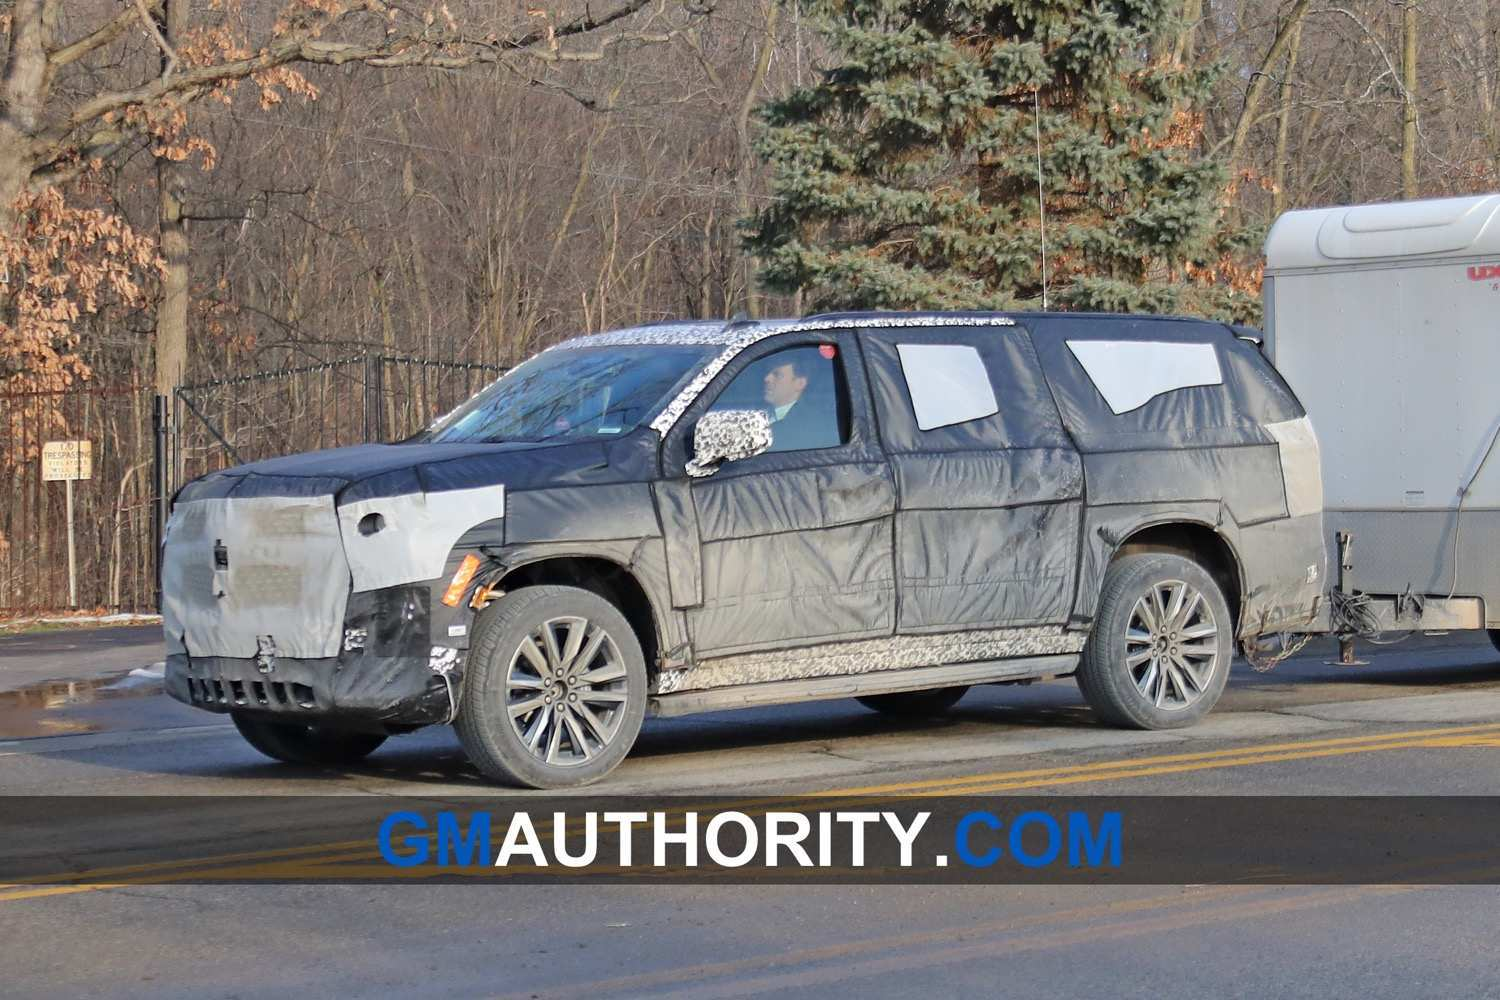 19 Best 2020 Cadillac Escalade Luxury Suv Model